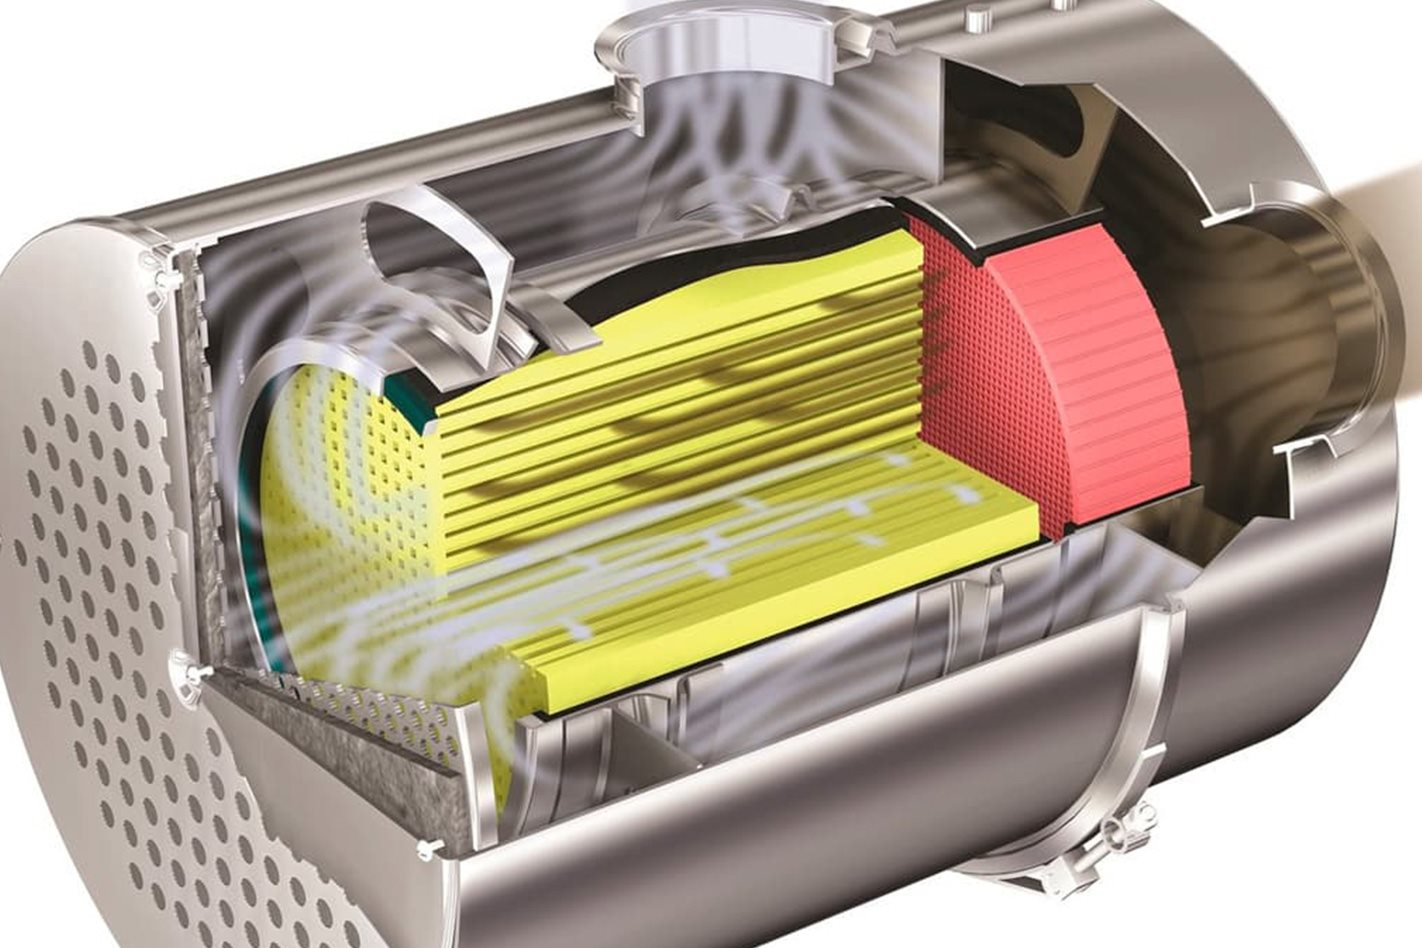 What is a petrol particulate filter, and how does it work?